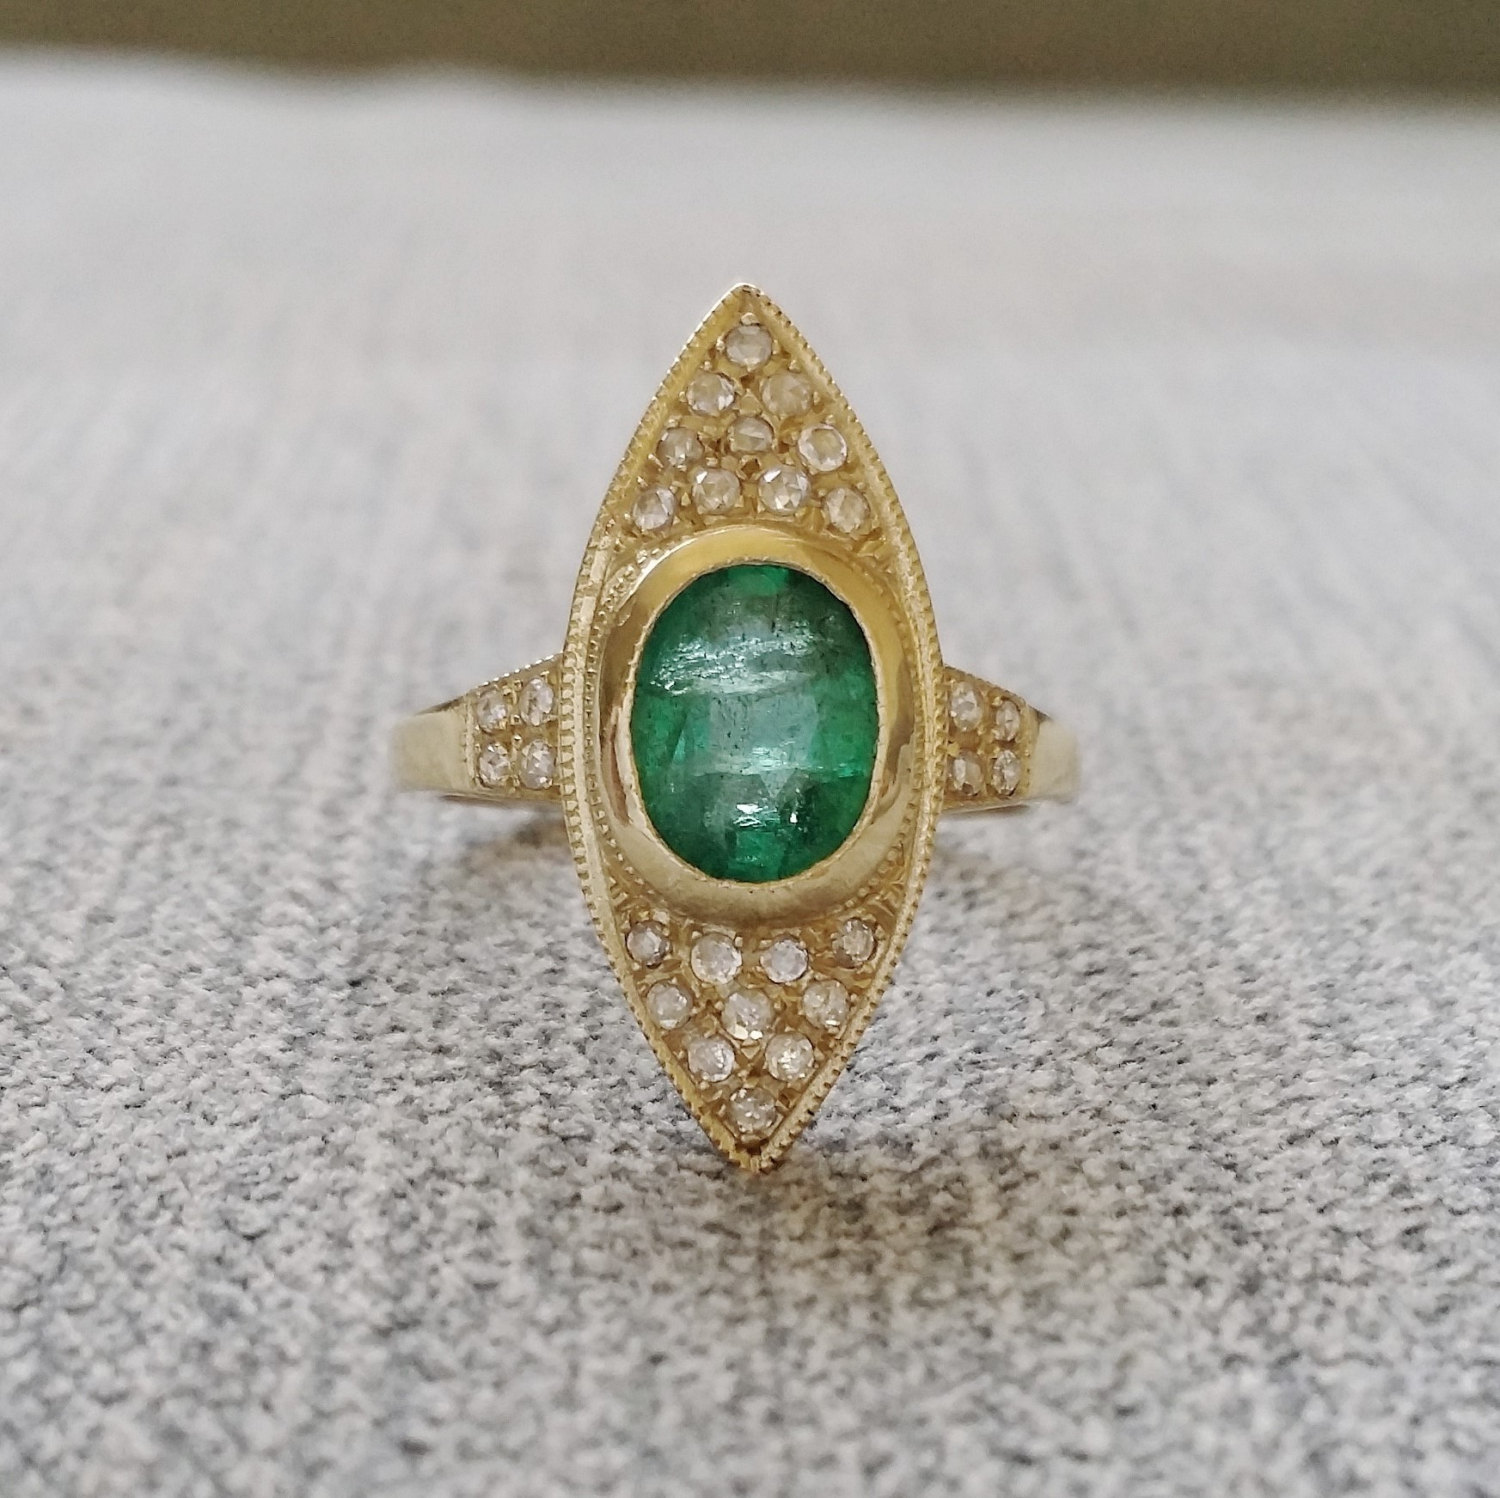 7 Victorian Engagement Rings Under $2000